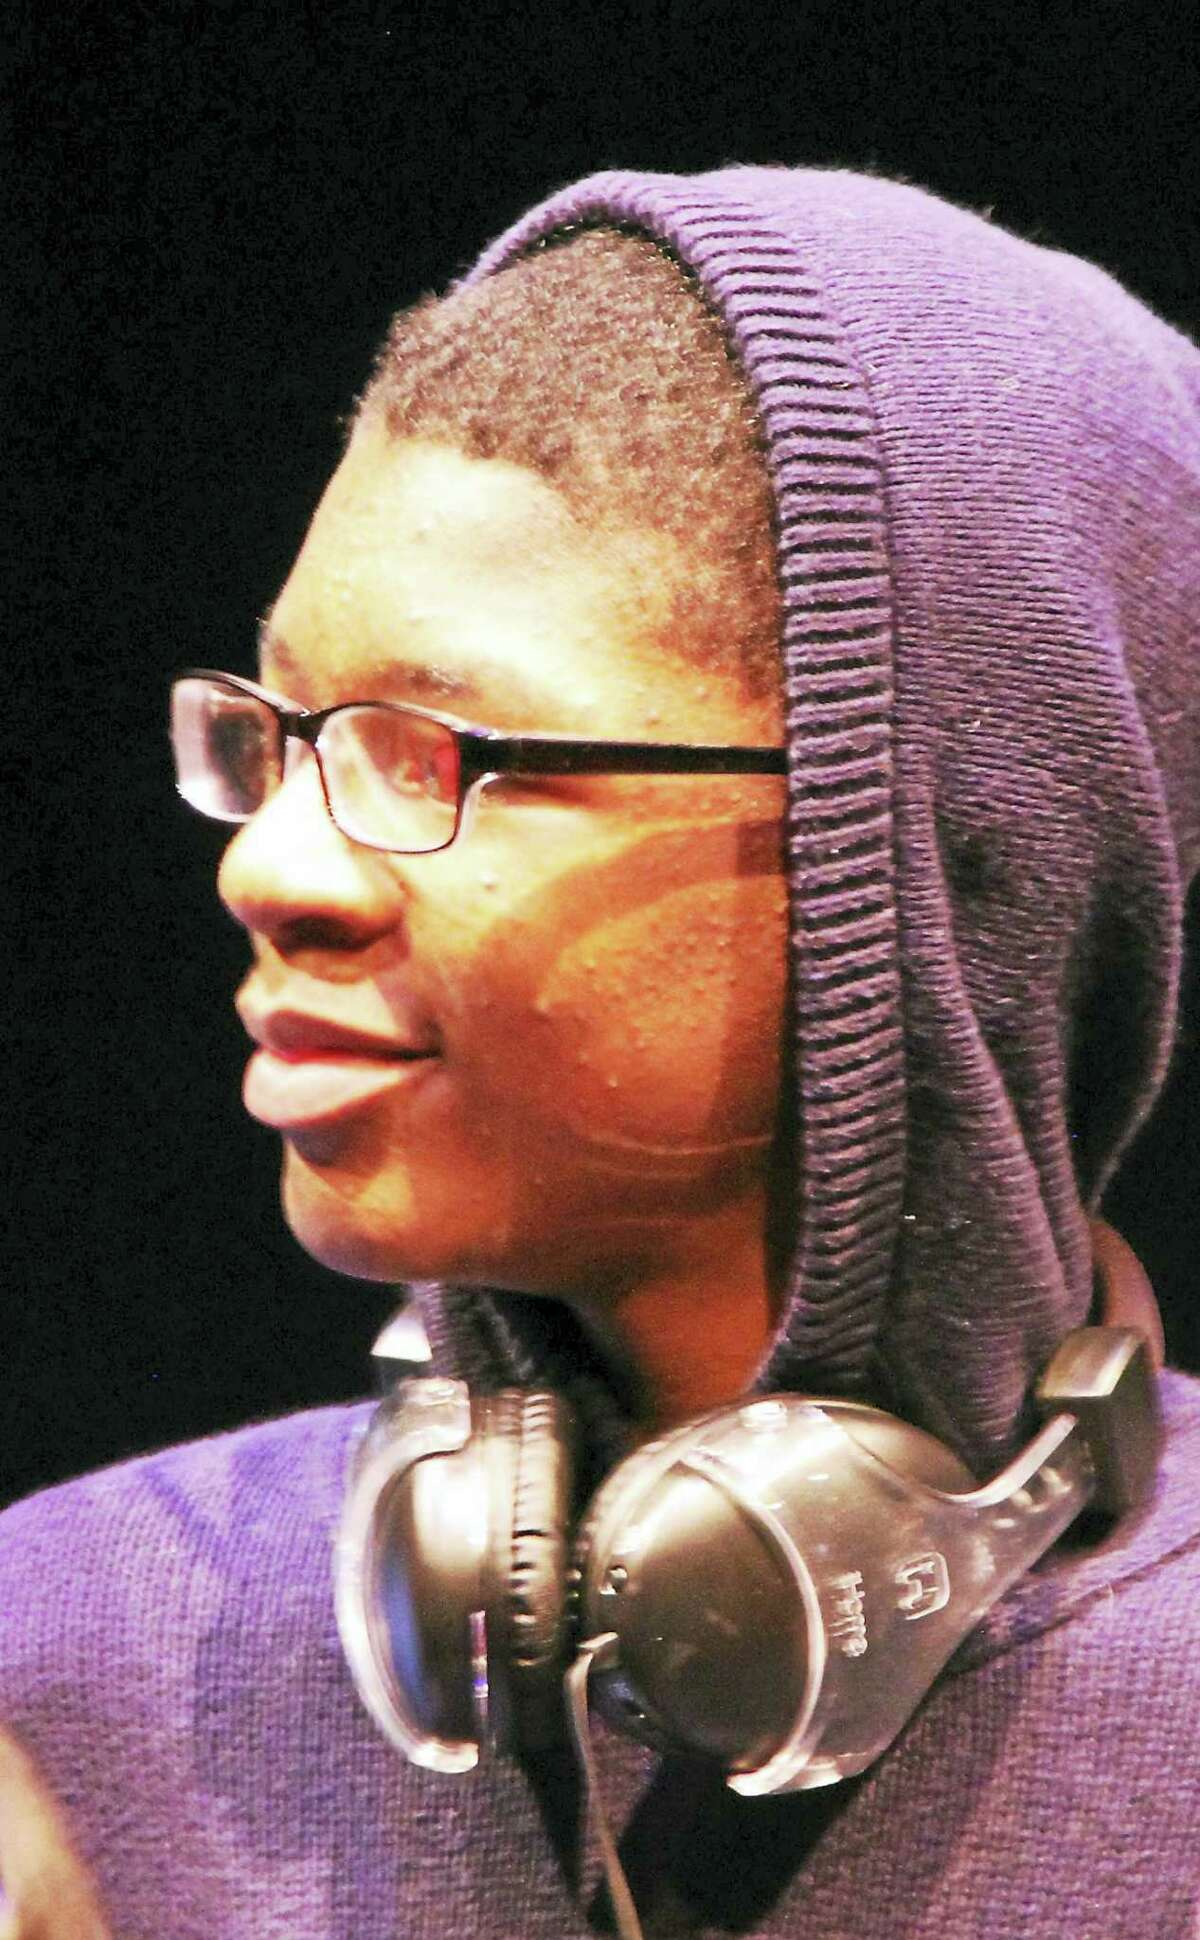 Caleb Rutherford, a freshman at New Haven Academy, performed last year as an 8th-grader from Betsy Ross Arts Magnet School and will perform again this year.